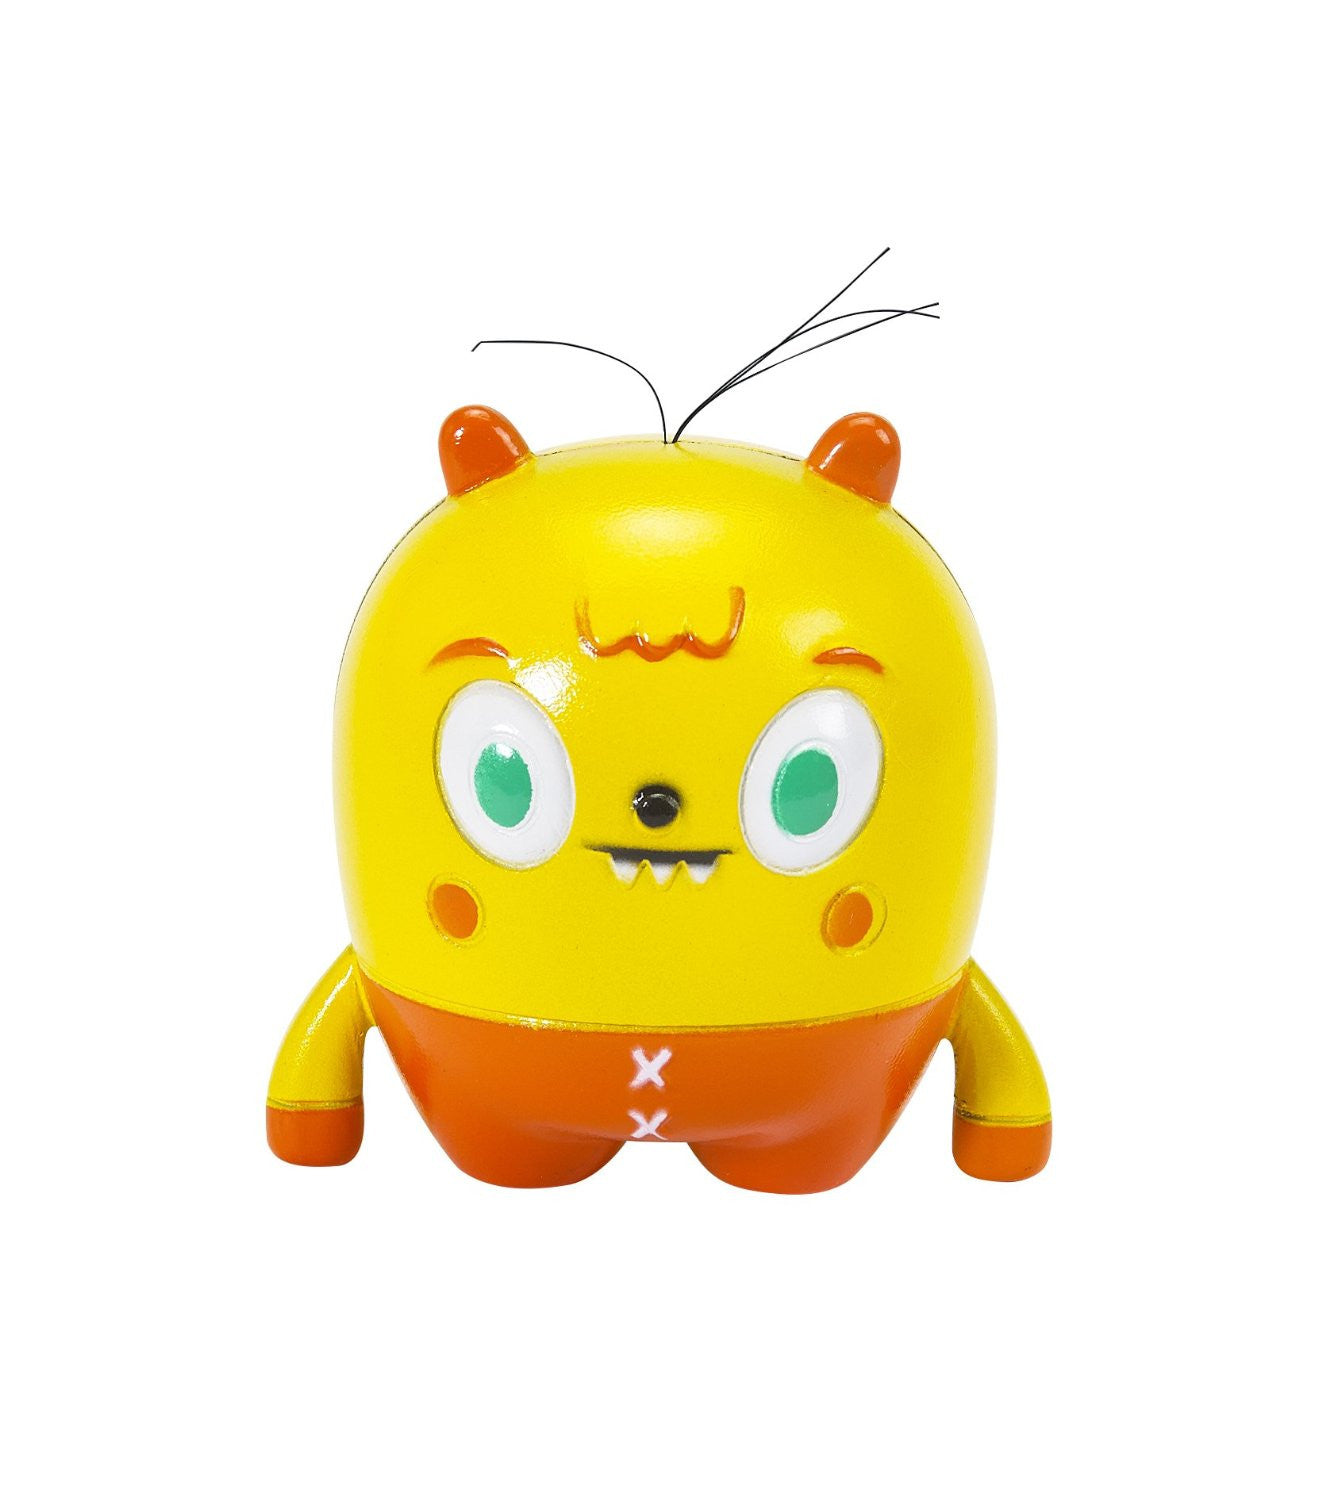 Moji Mi Living Emoticon Figure in Yellow by Little Kids - Off The Wall Toys and Gifts